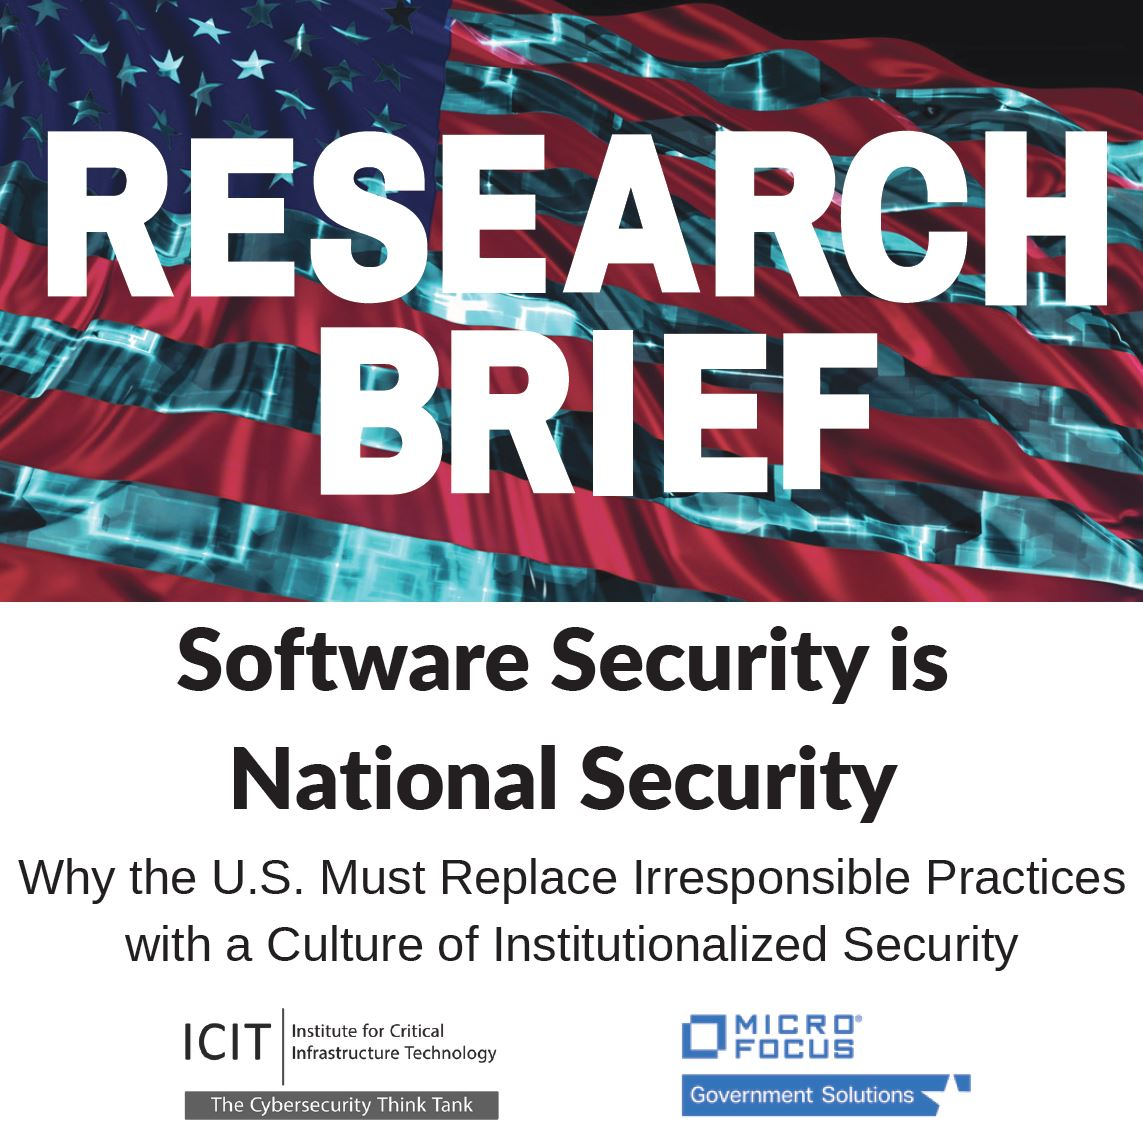 icit, institute for critical infrastructure technology, cybersecurity, china. espionage